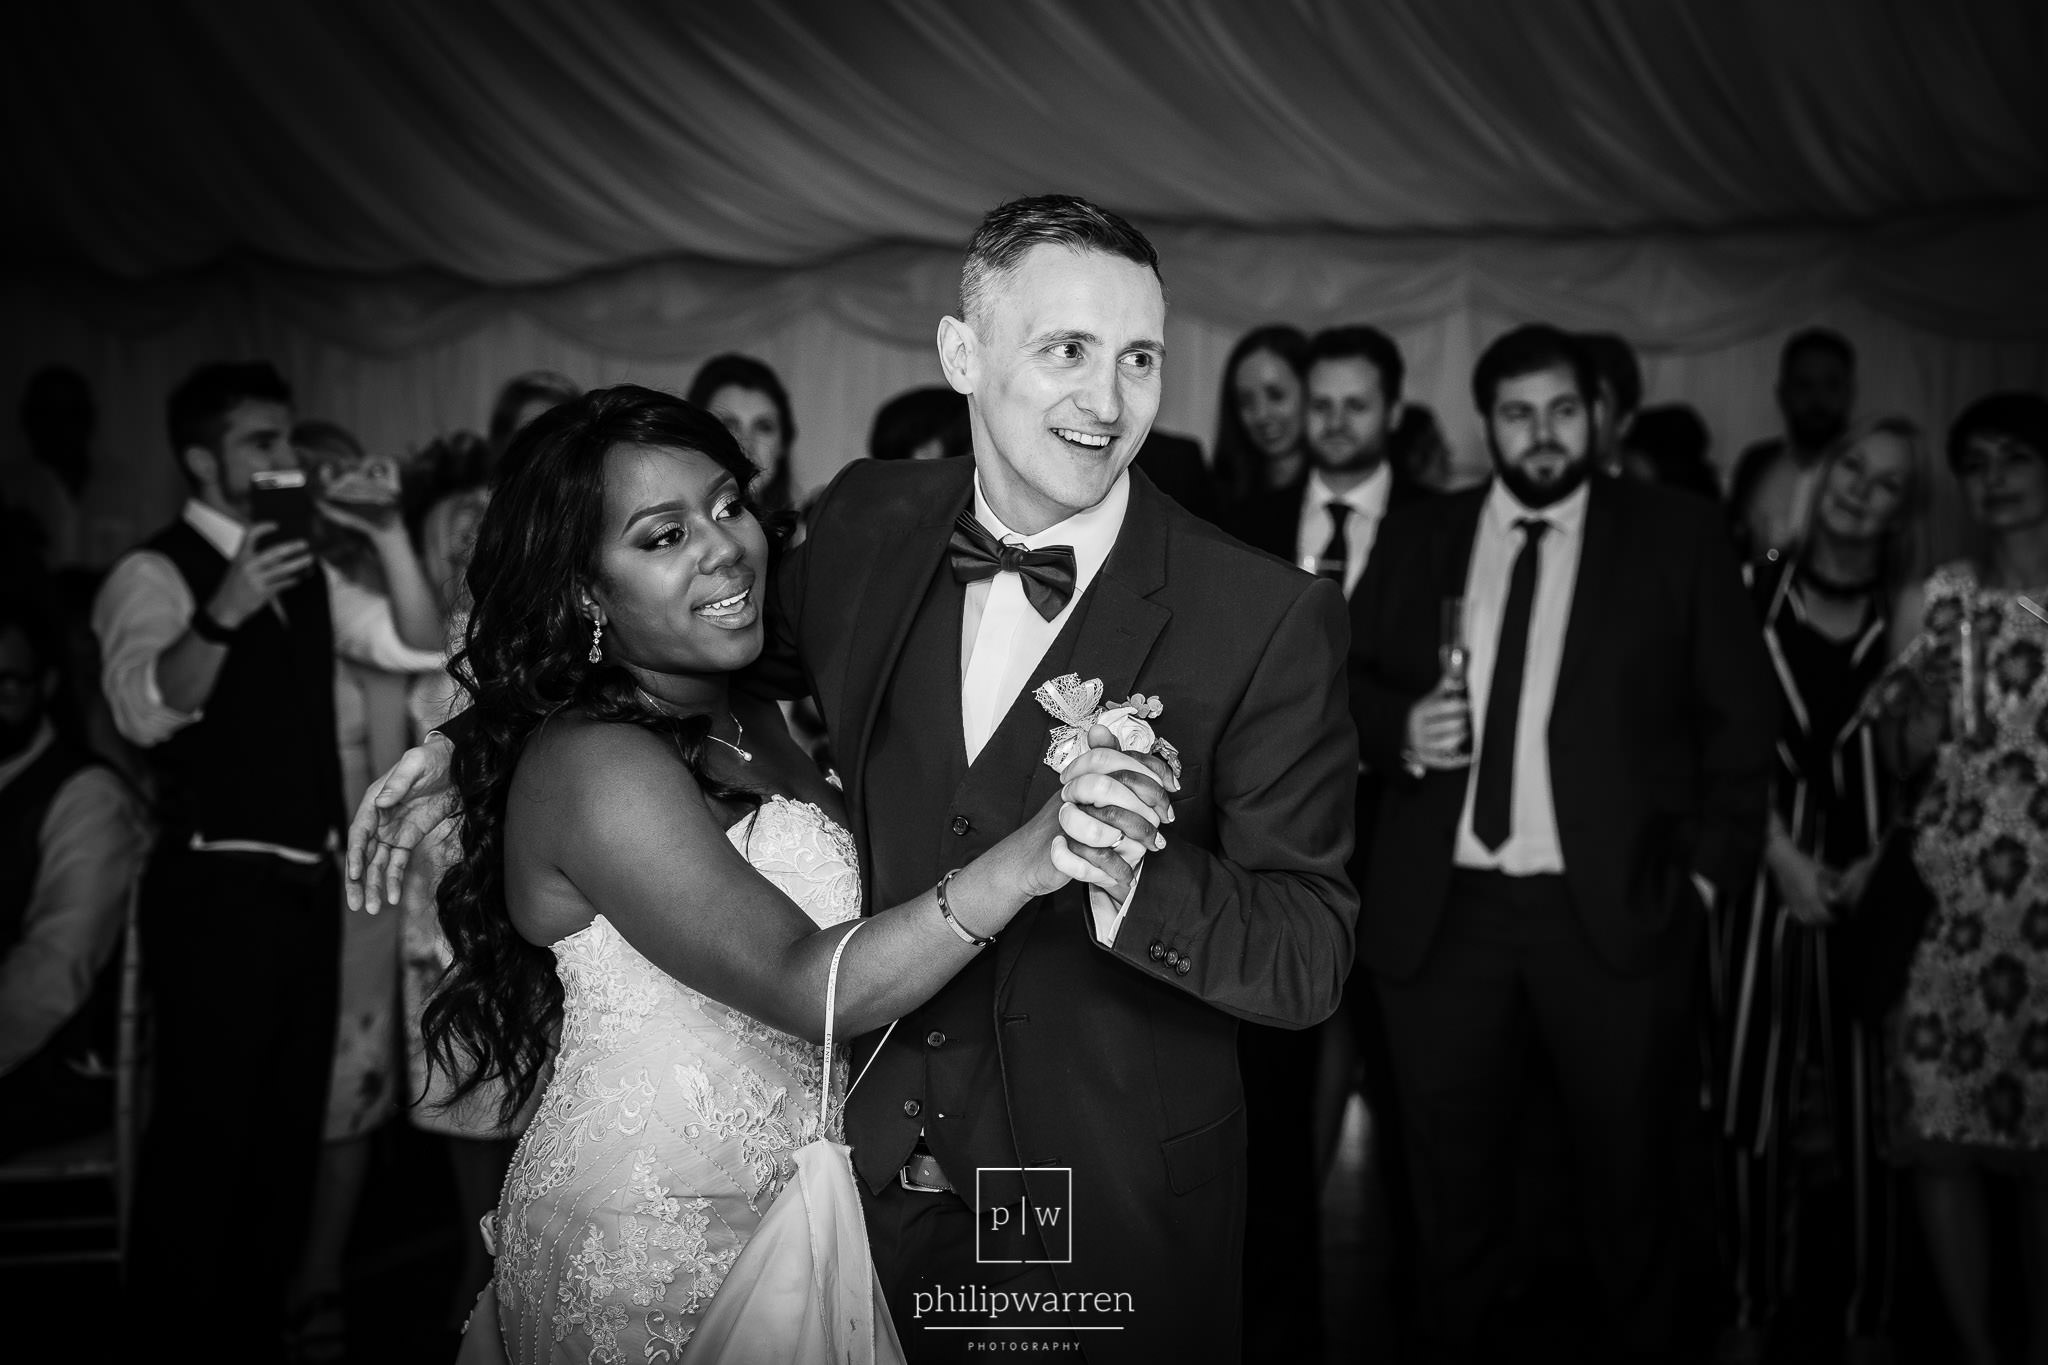 first dance at wedding in bryngarw house hotel